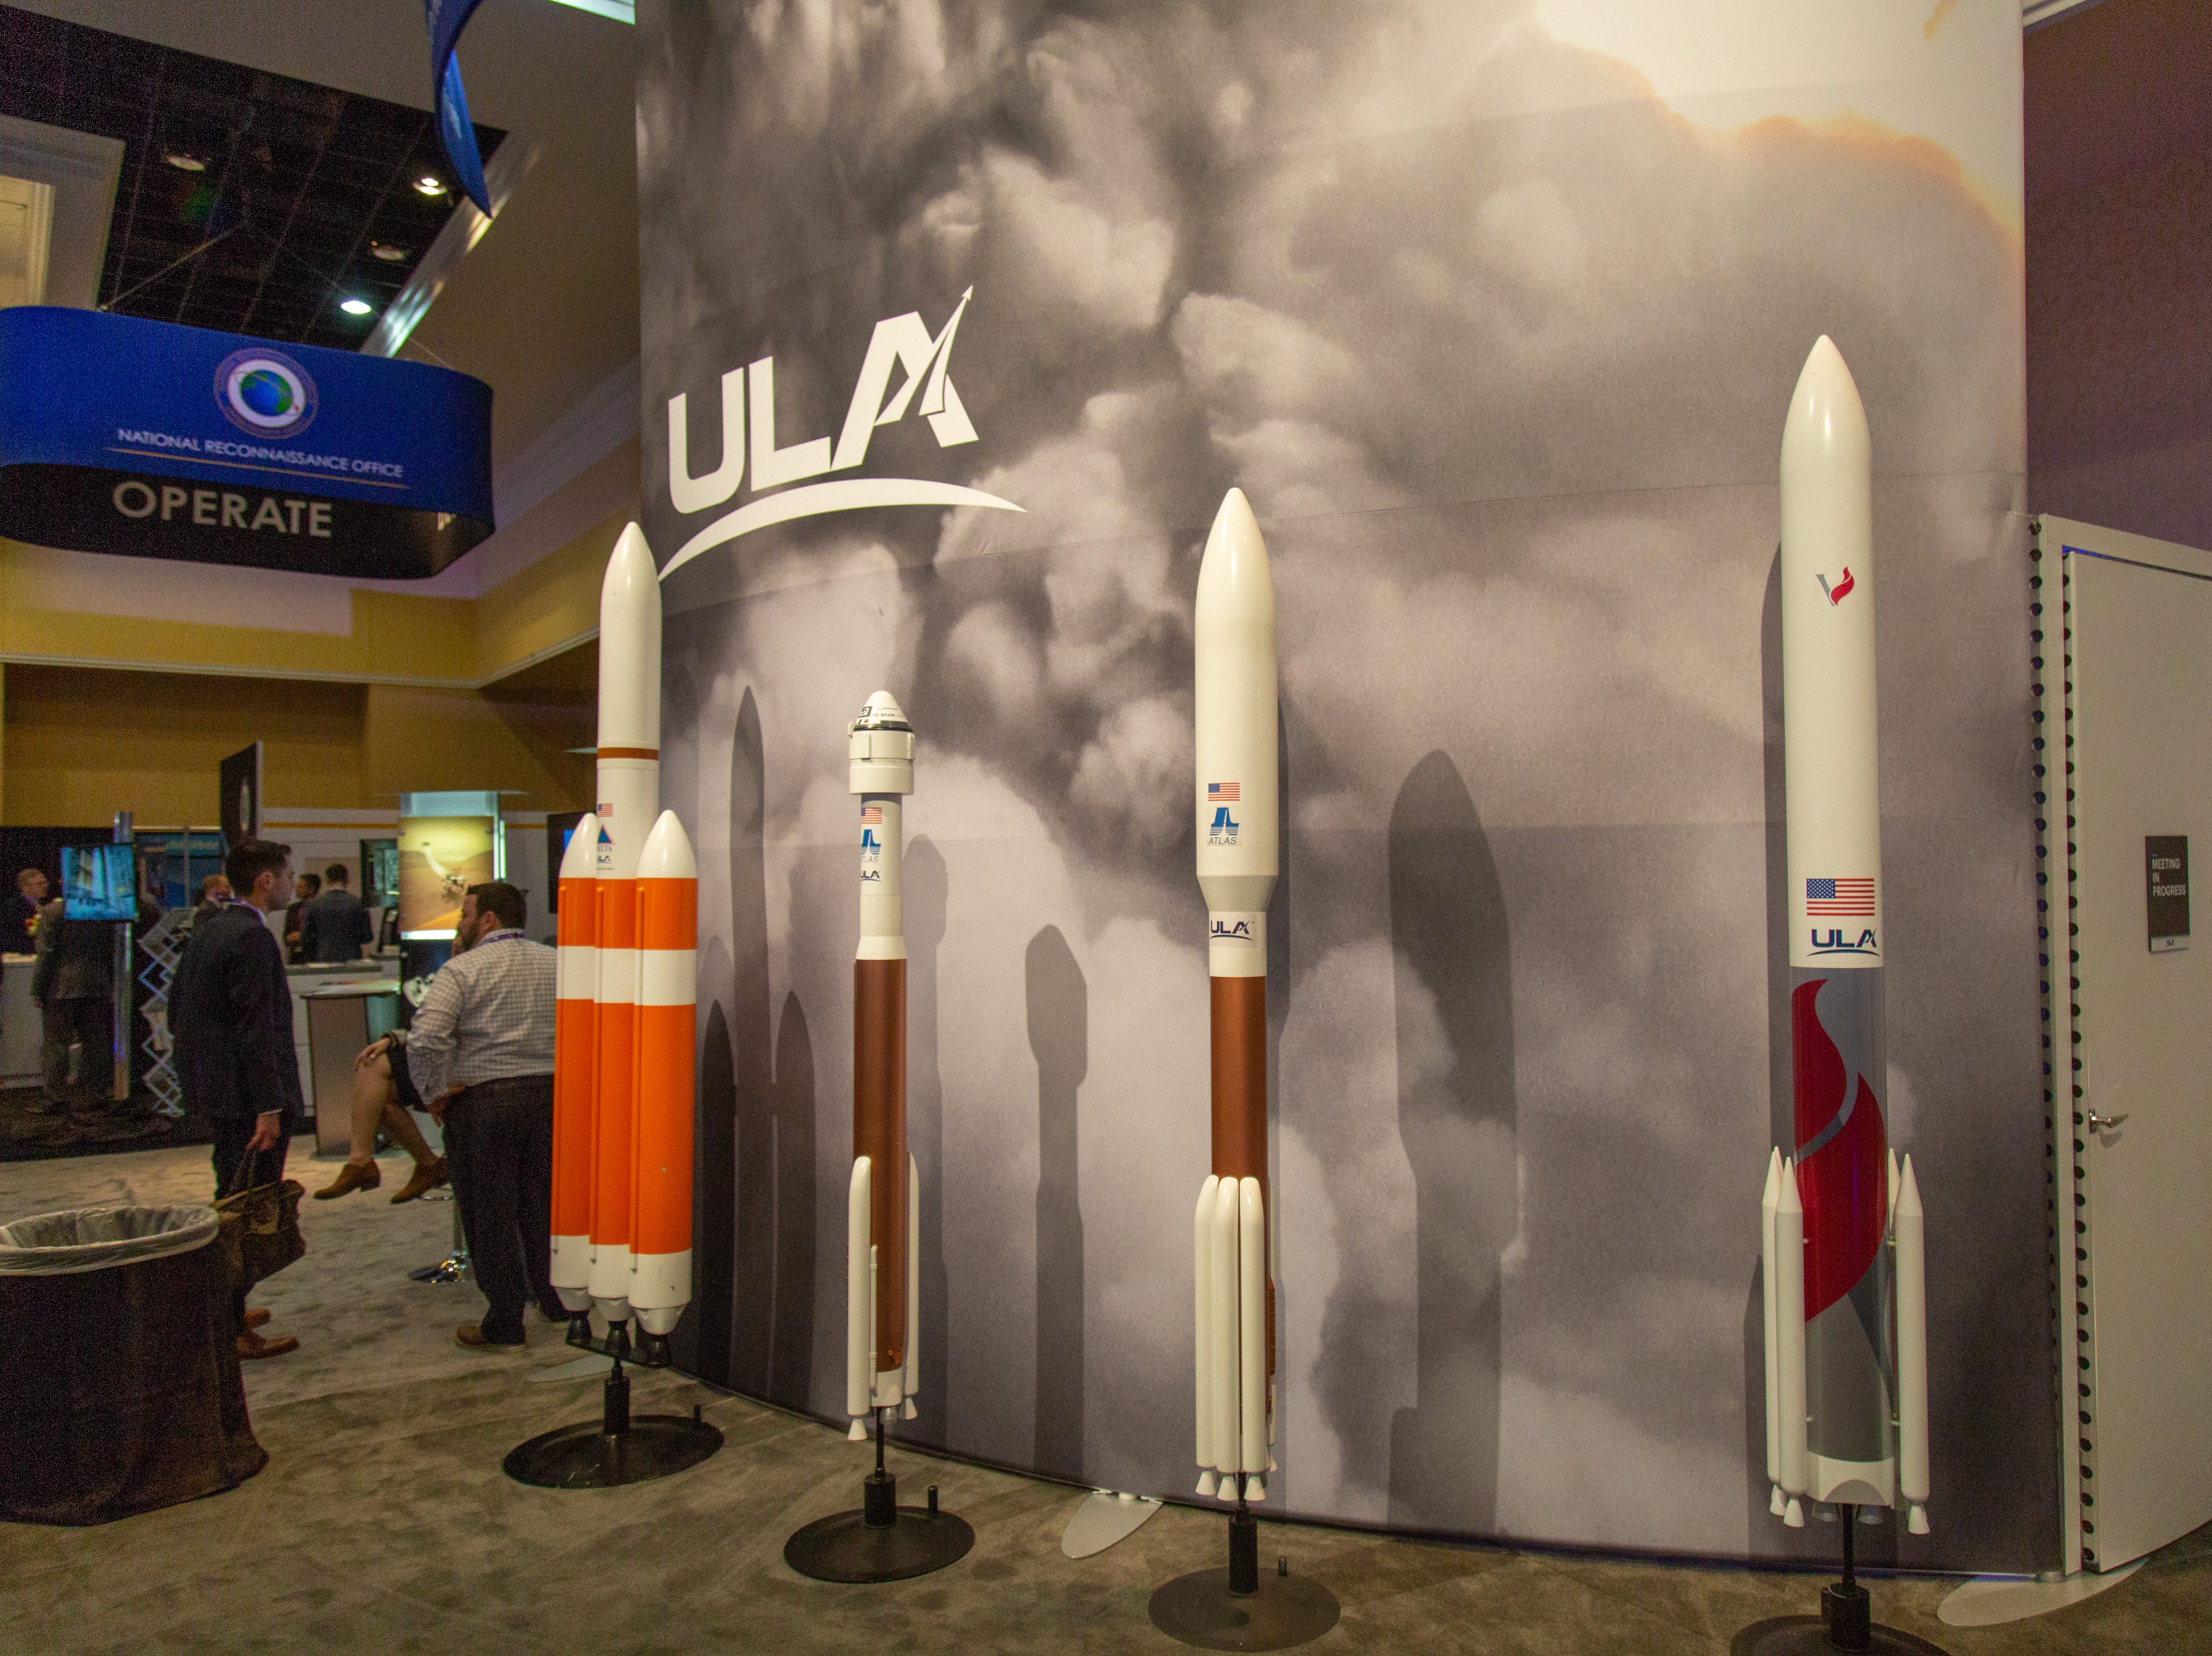 United Launch Alliance's display of Delta, Atlas and Vulcan rockets at the 35th Space Symposium in Colorado Springs held April 8 to 11.